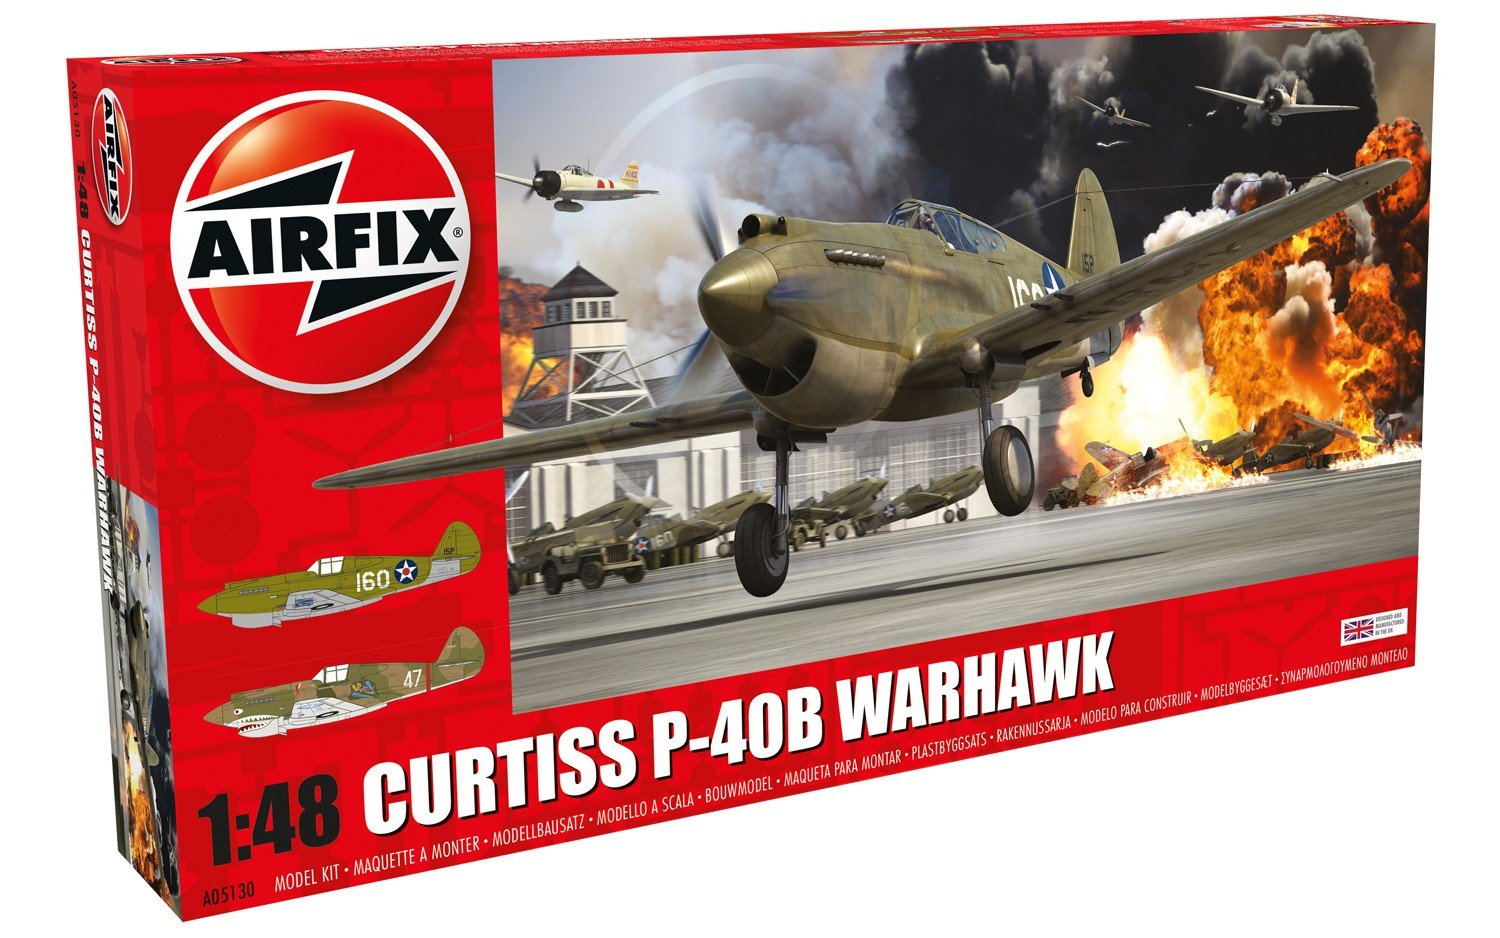 Airfix WWII Curtiss P-40B Warhawk 1:48 Military Aircraft Plastic Model Kit